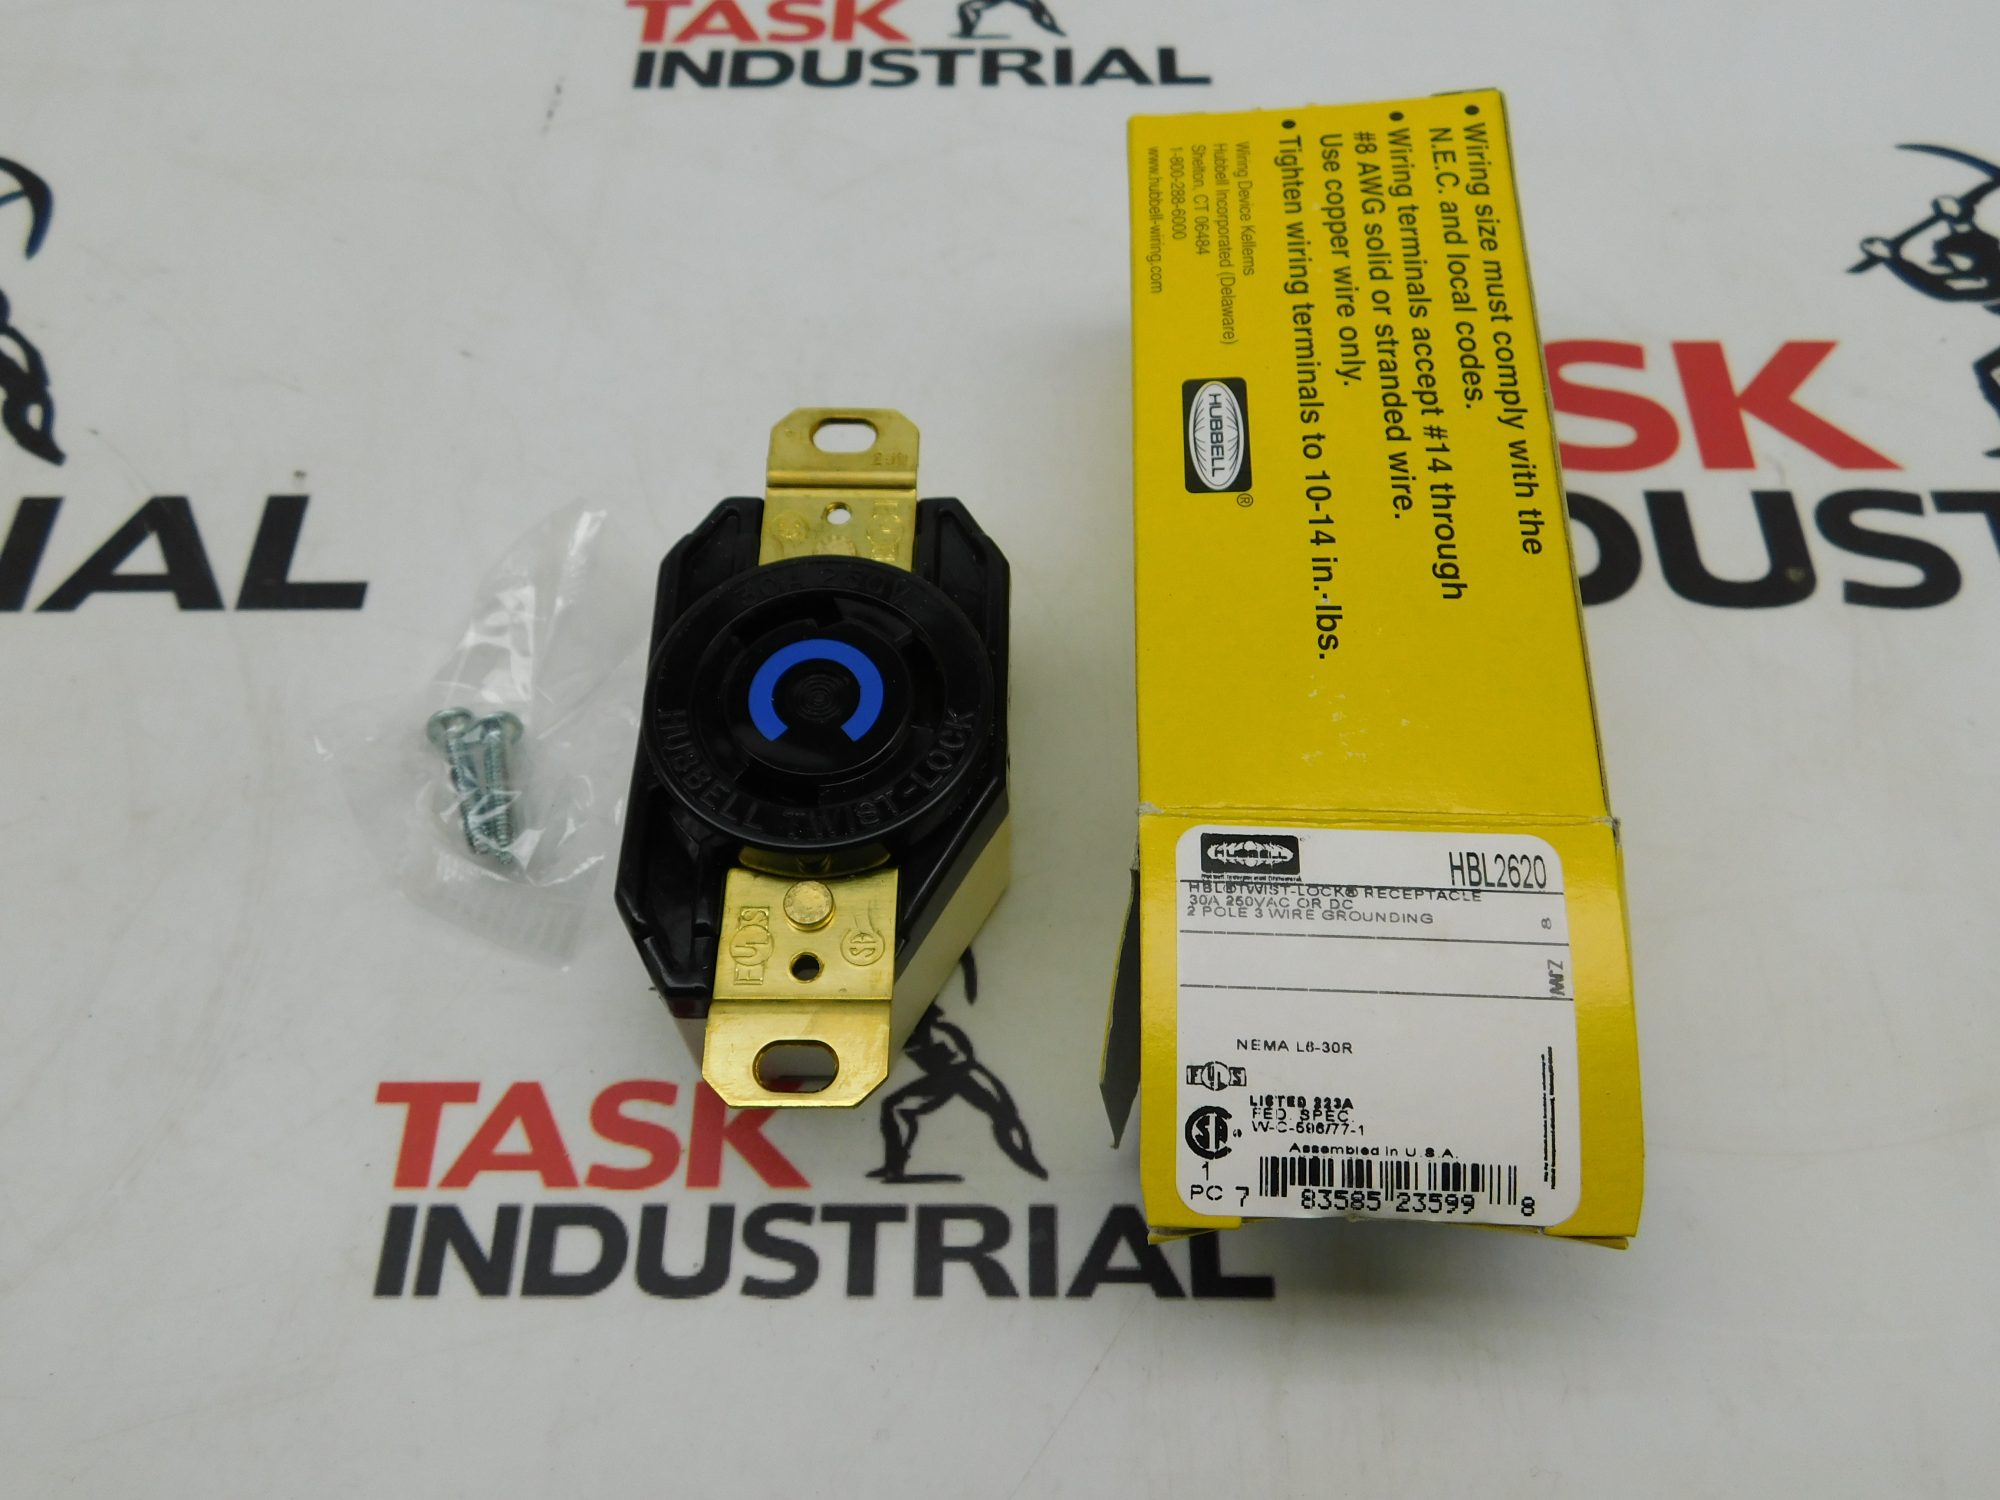 CASE OF 10: HUBBELL HBL2620 2P 3 Wire 30A 250 VAC VDC Receptacle Twist Lock